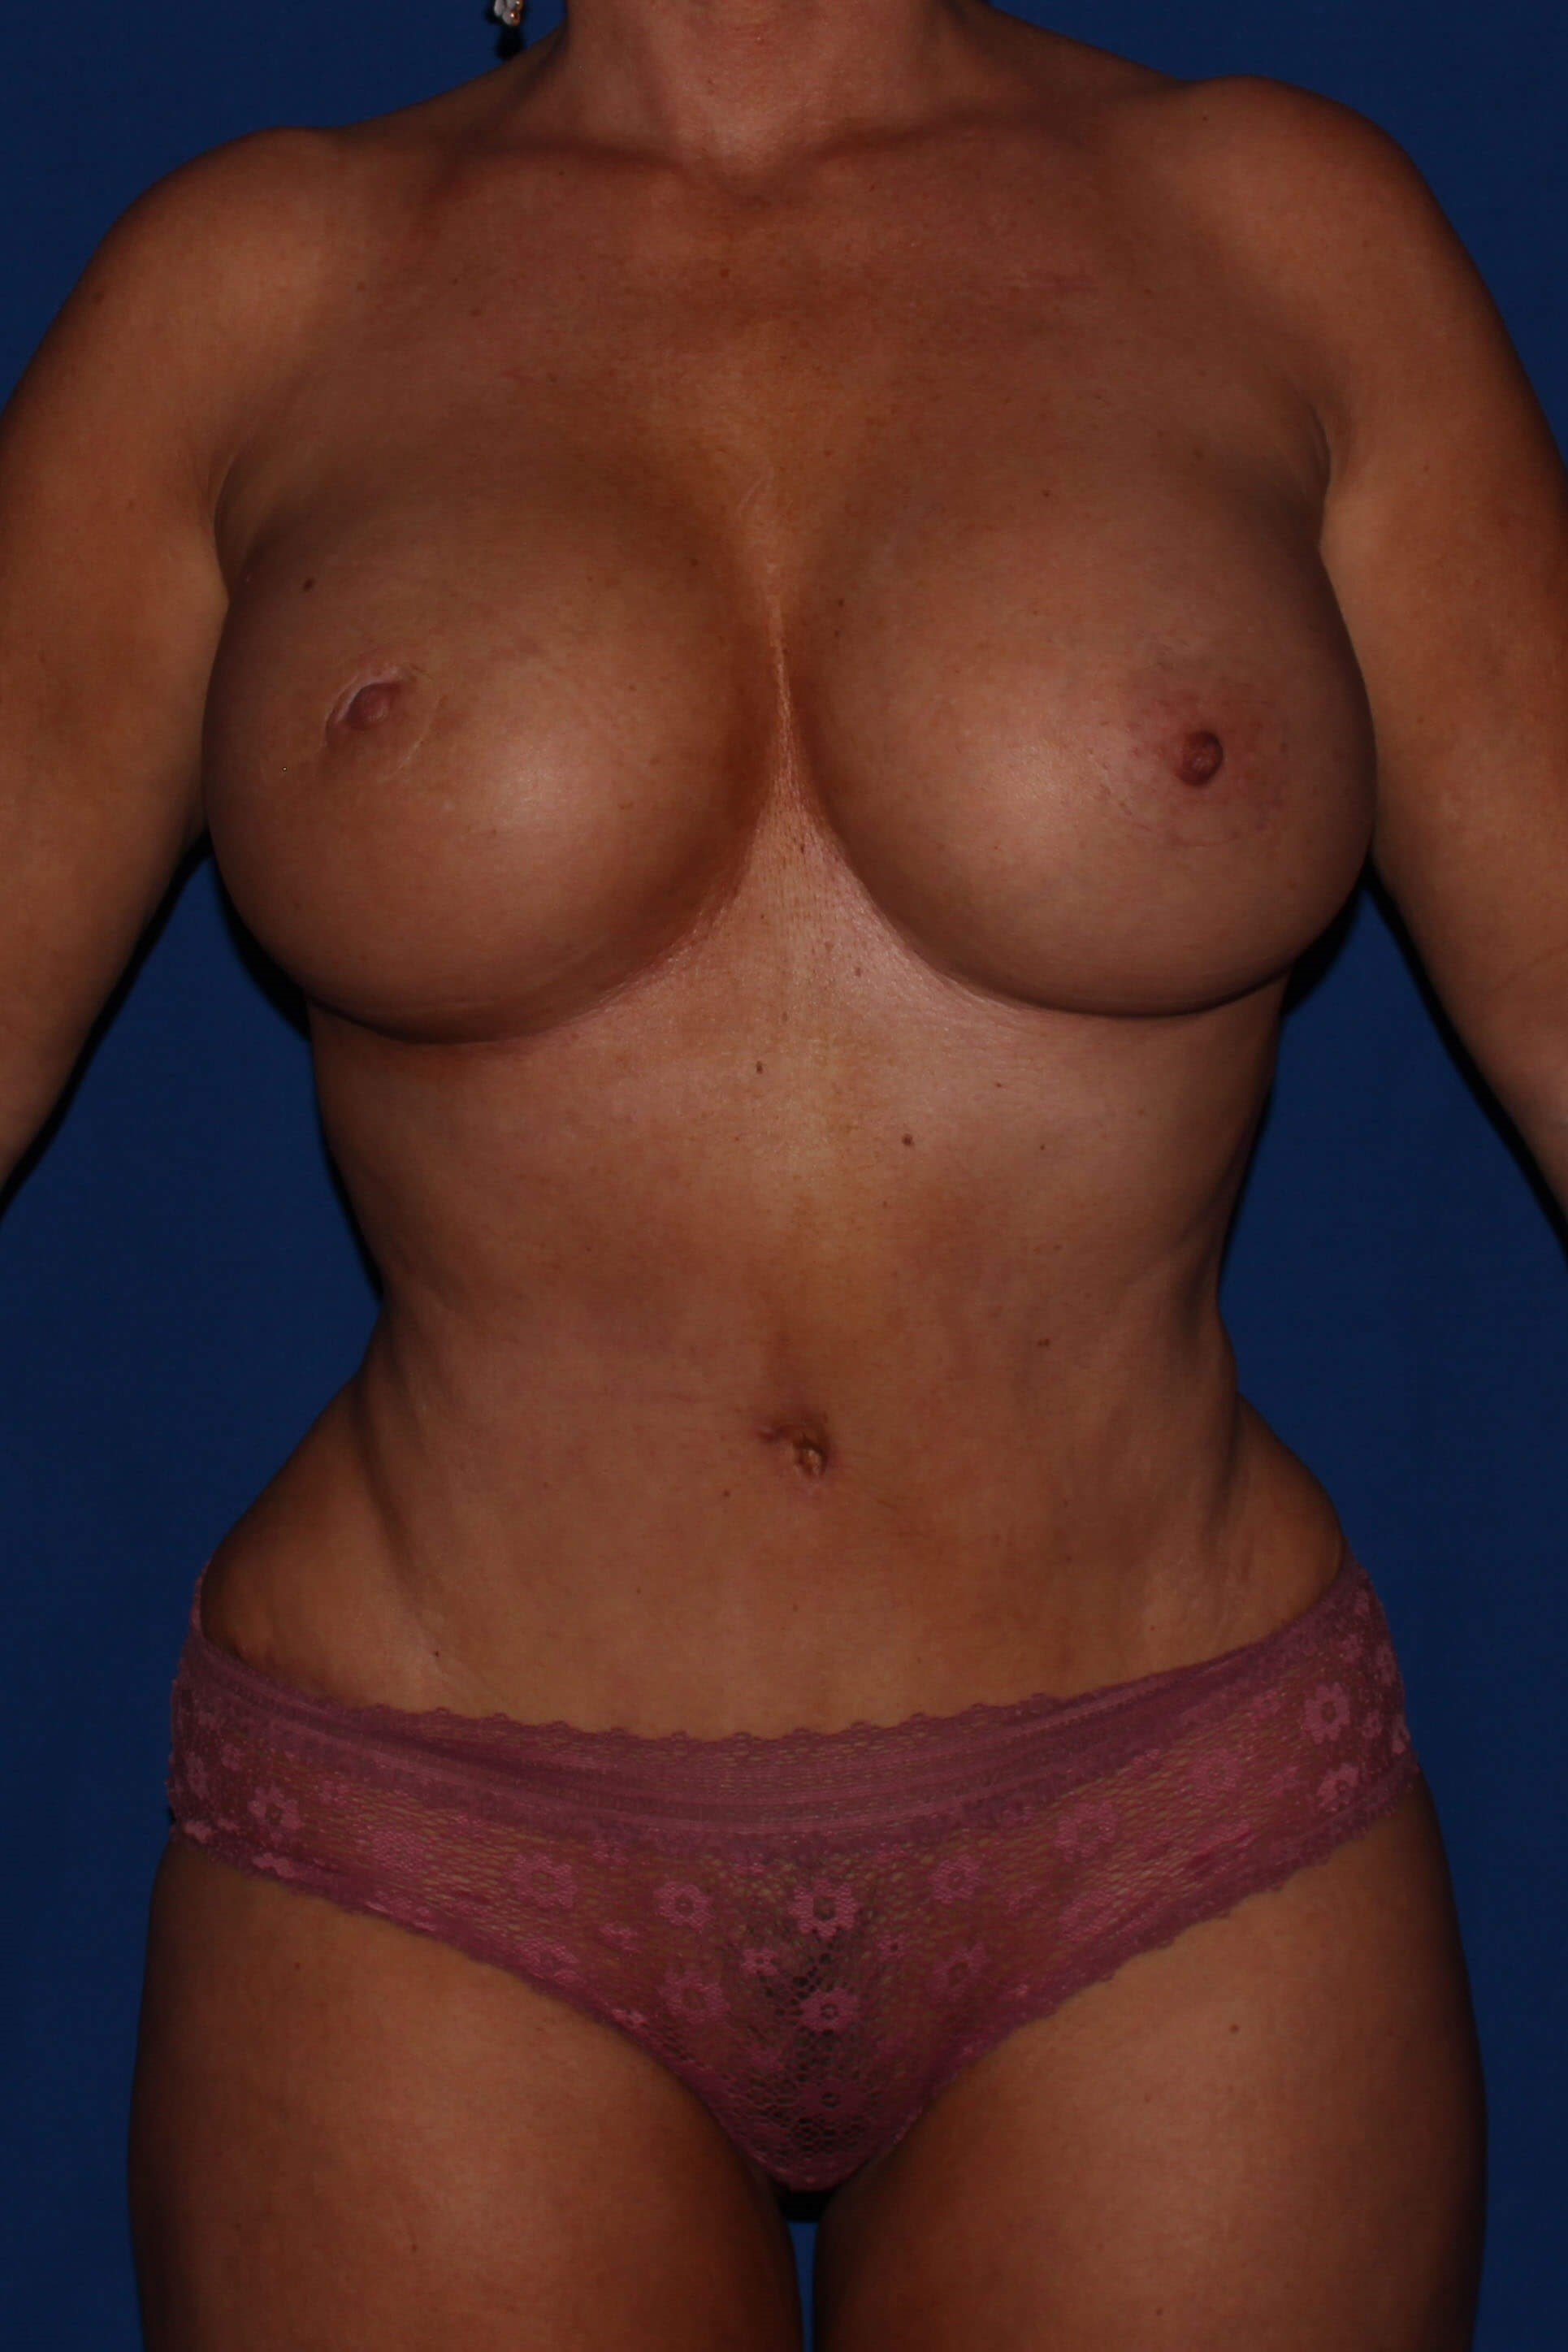 Liposuction after - Scottsdale AZ mommy makeover